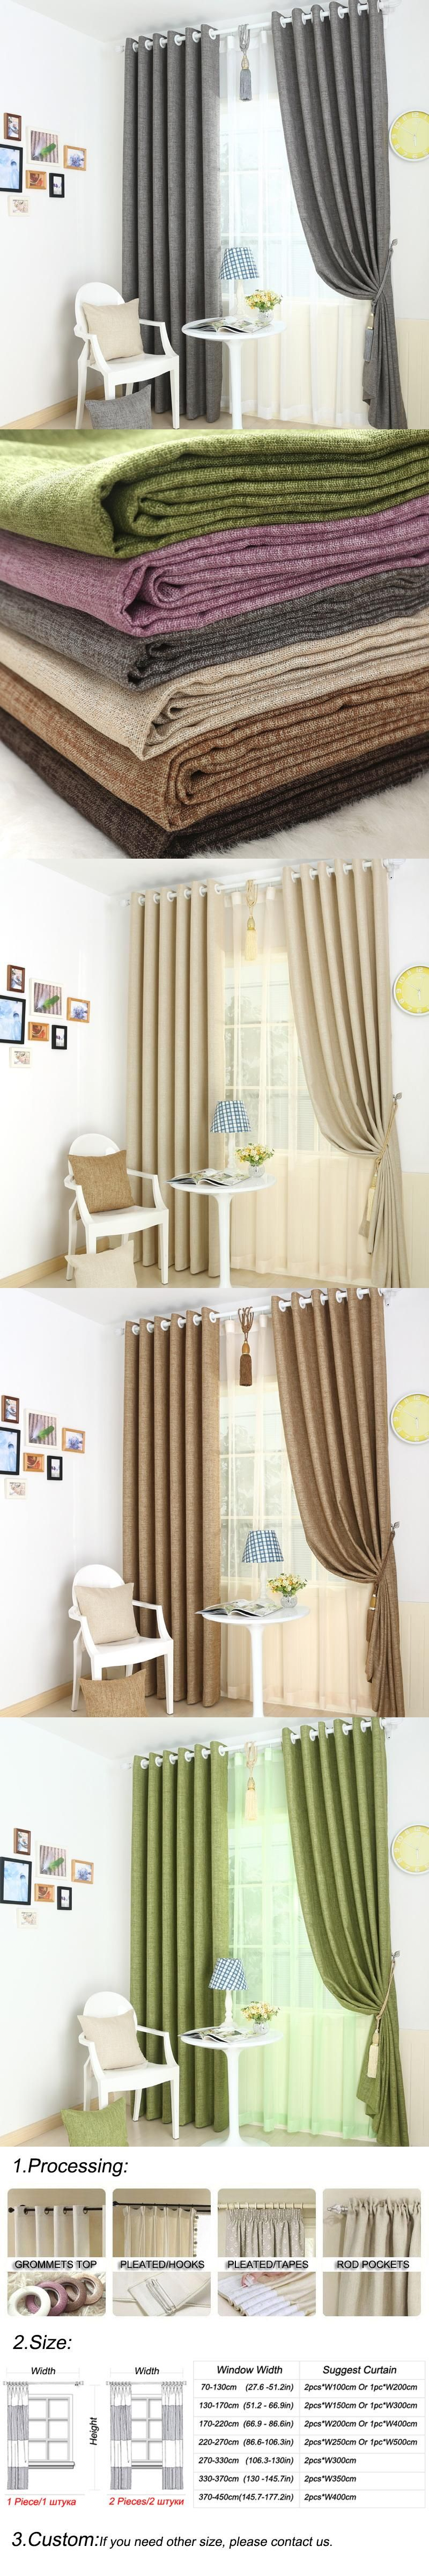 Window top decor  full blackout curtain drapes for bedroom linen finished blinds